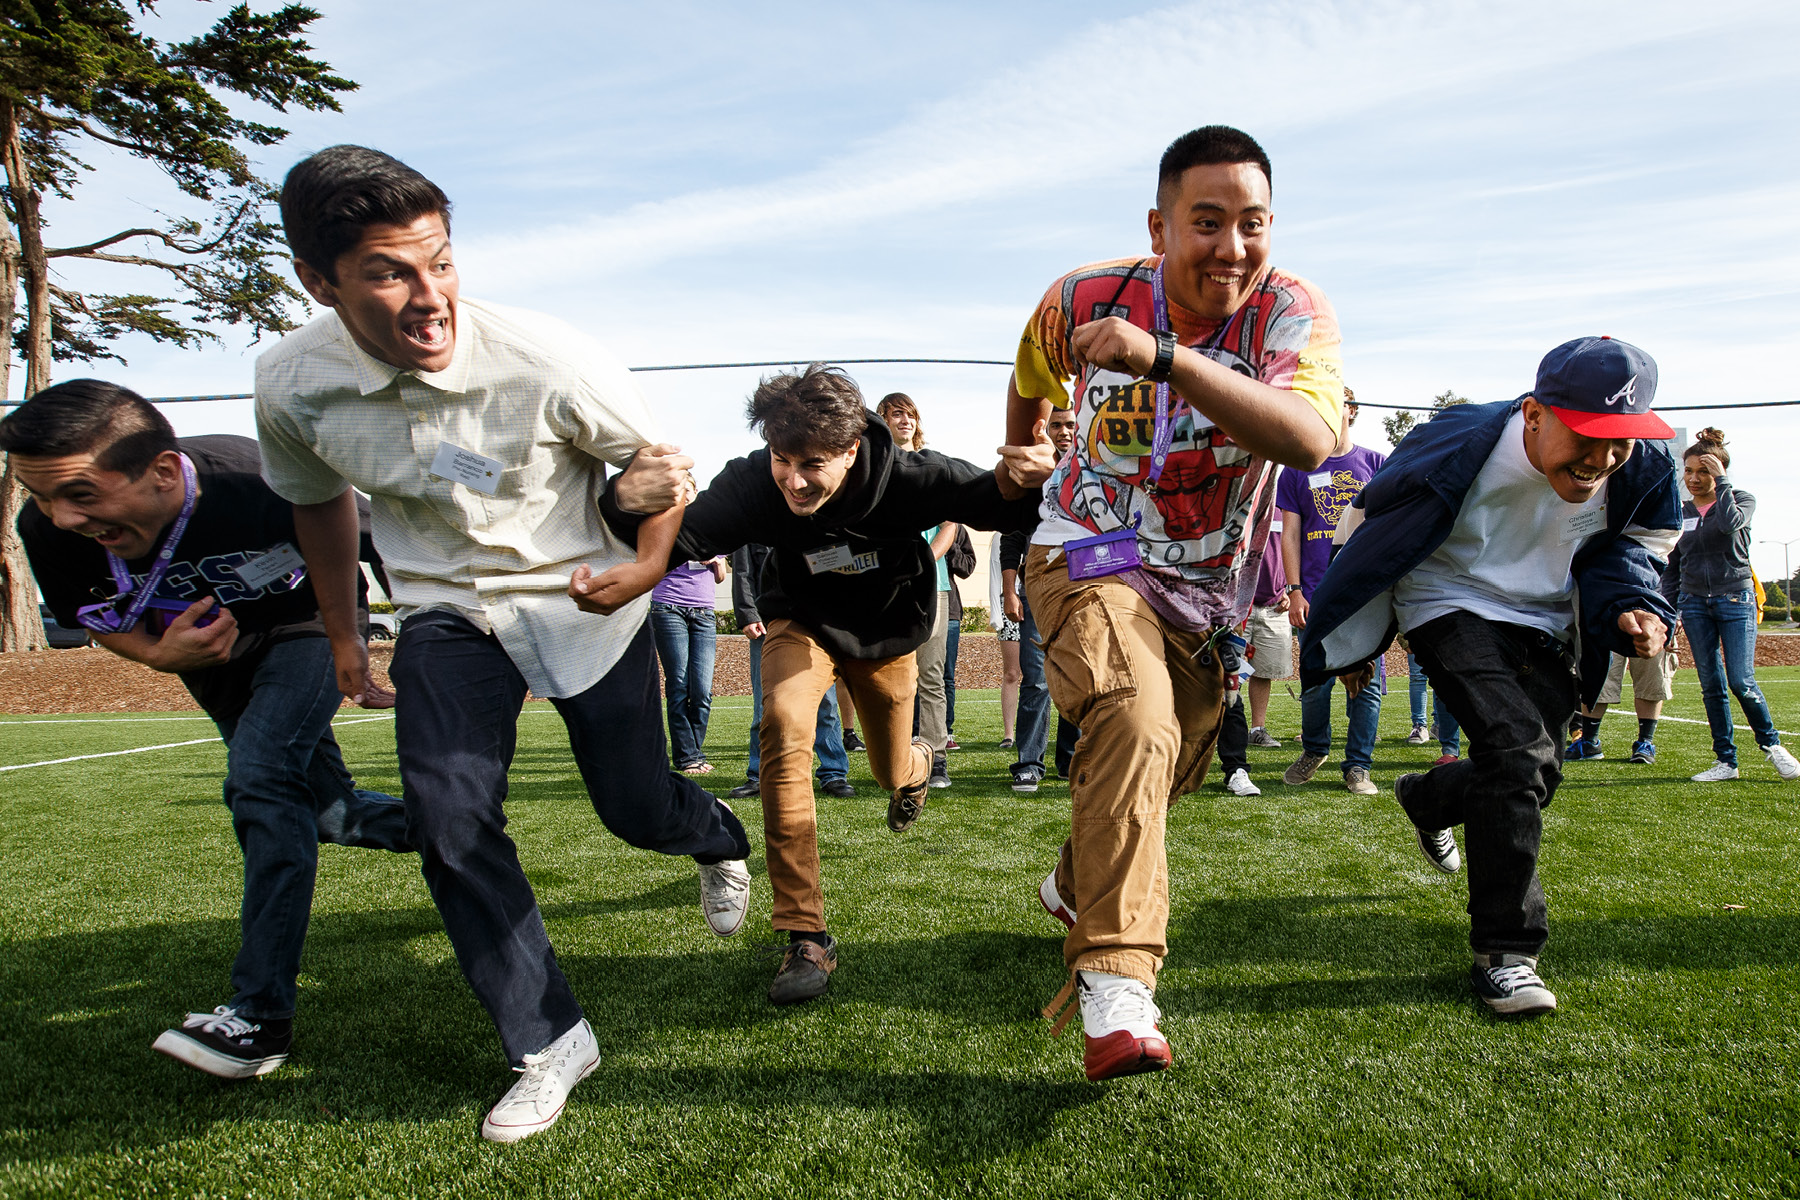 Students in a foot race